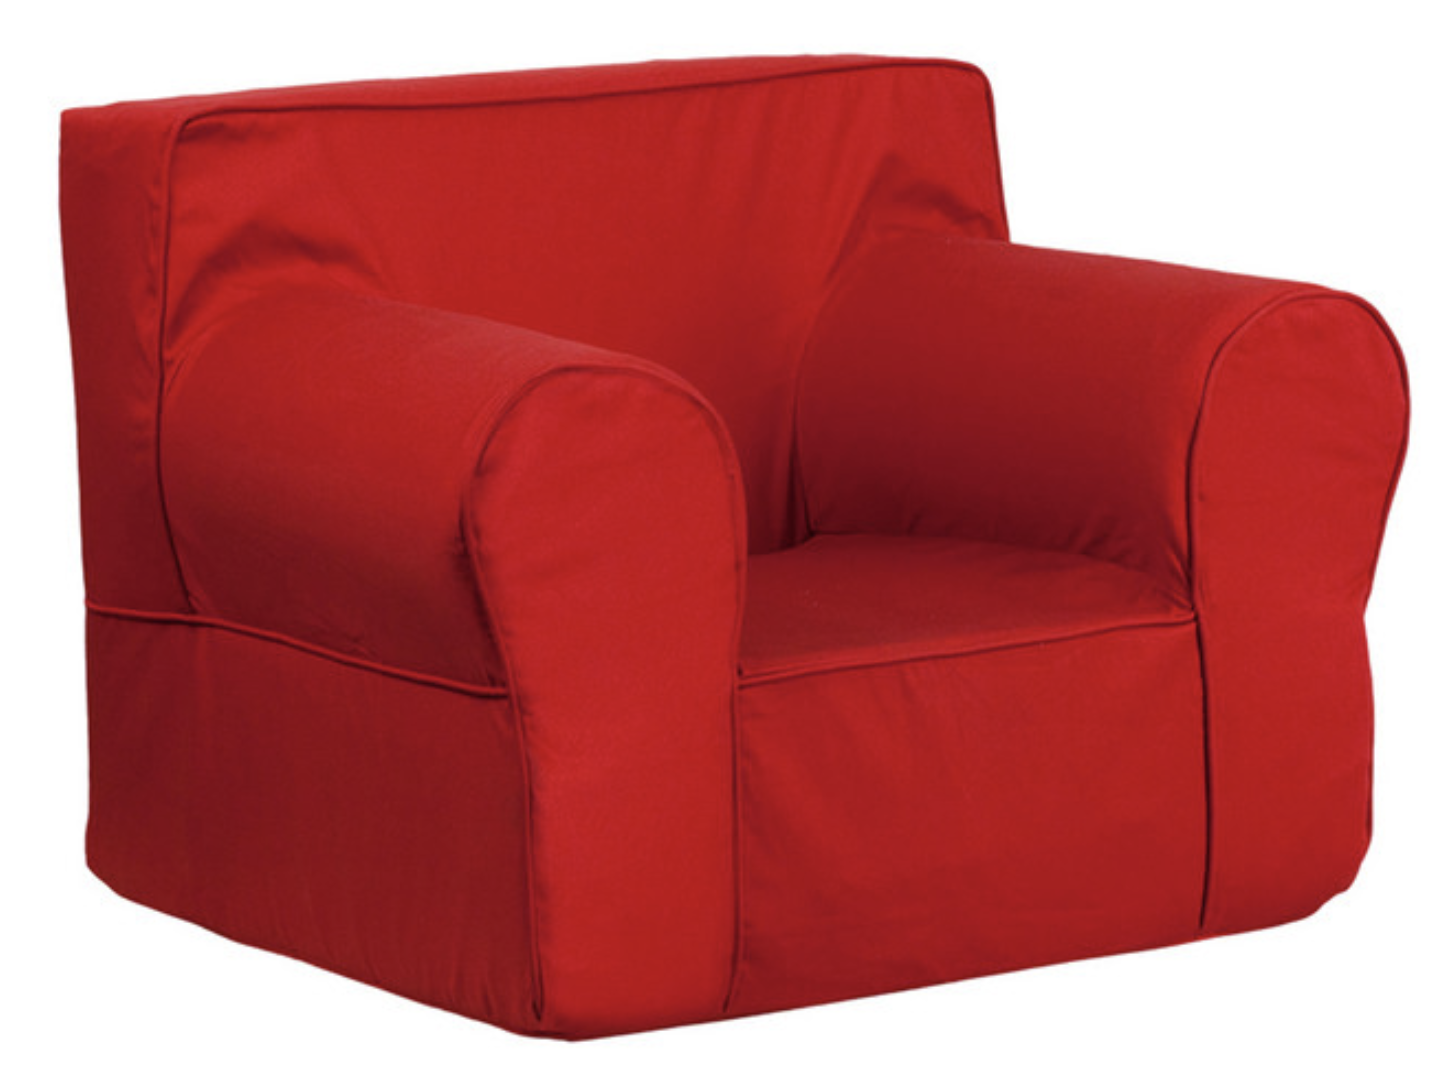 offex-oversized-solid-red-kids-chair